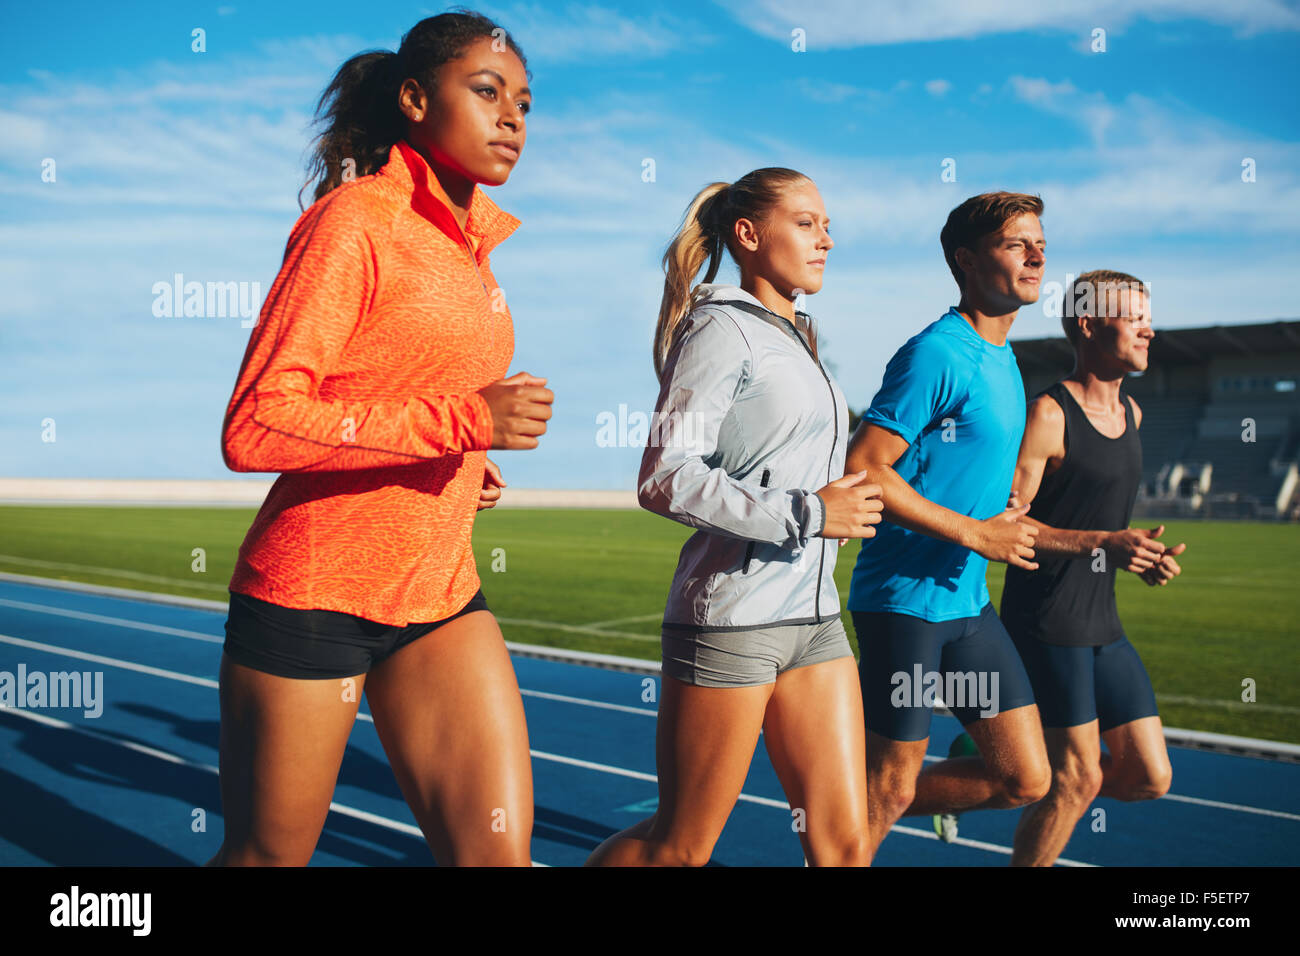 Group of diverse sports person practicing running in stadium. Male and female athletes running together on racetrack. - Stock Image